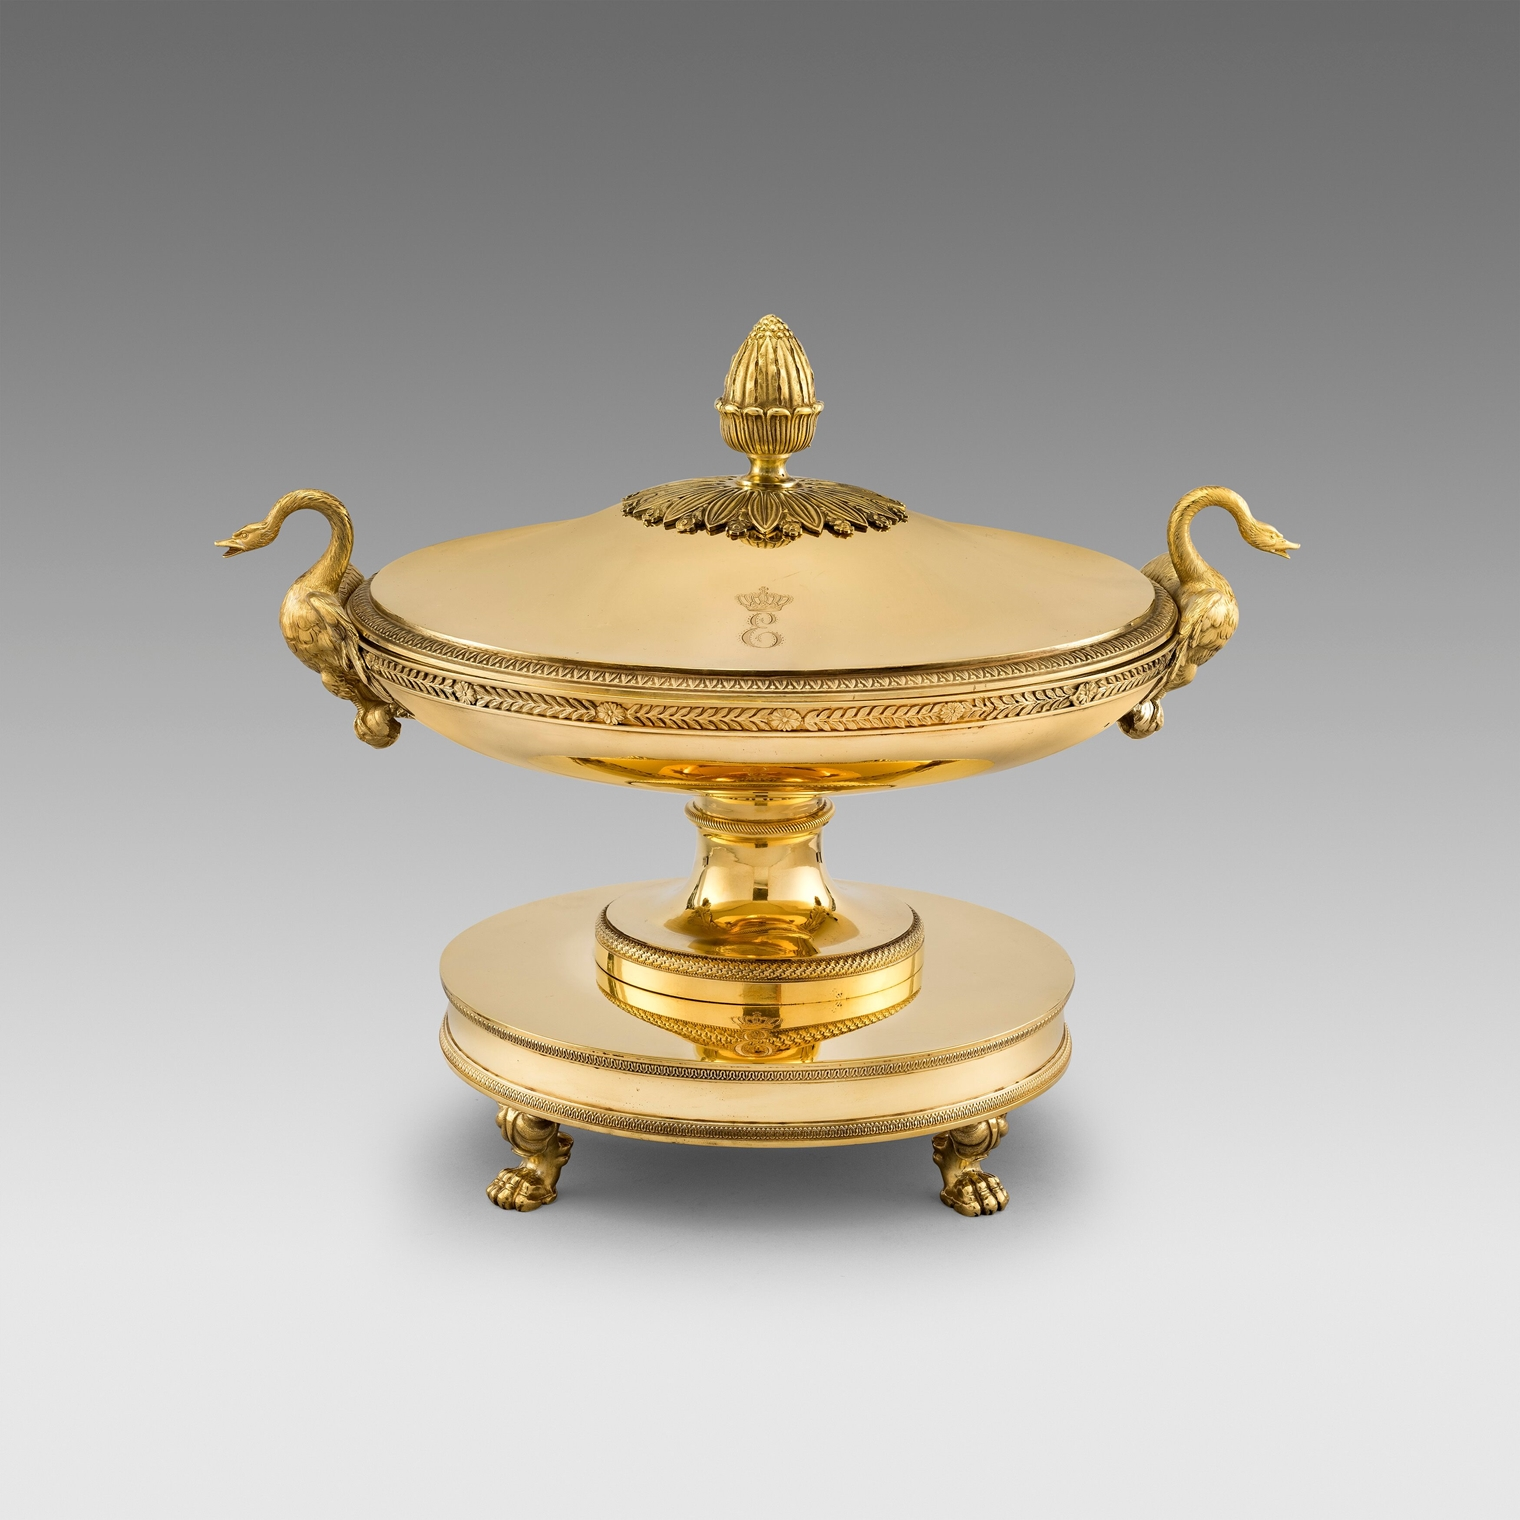 Jean-Baptiste-Claude Odiot (1763 - Paris 1850)A French 'Royal' Silver-Gilt Soup Tureen